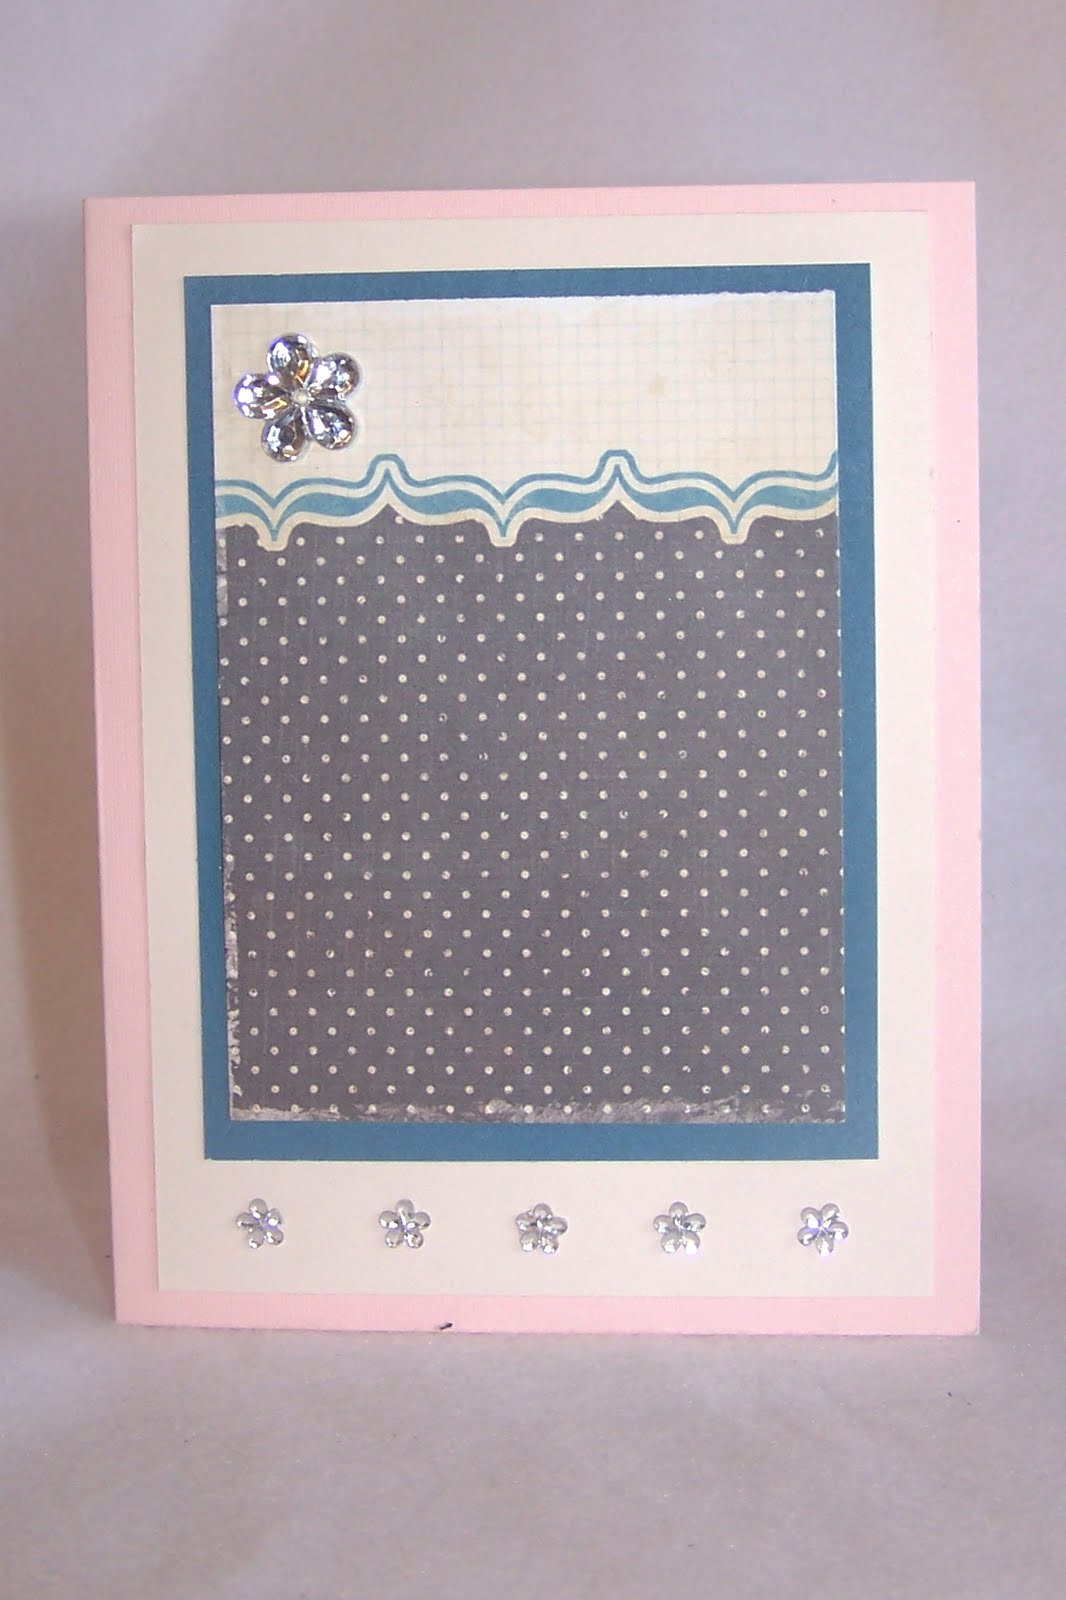 Cream colored cardstock paper studio - This One I Used A New Embossing Folder On The Dark Blue Cardstock It Is Called Scalloped Dots By The Paper Studio From Hobby Lobby